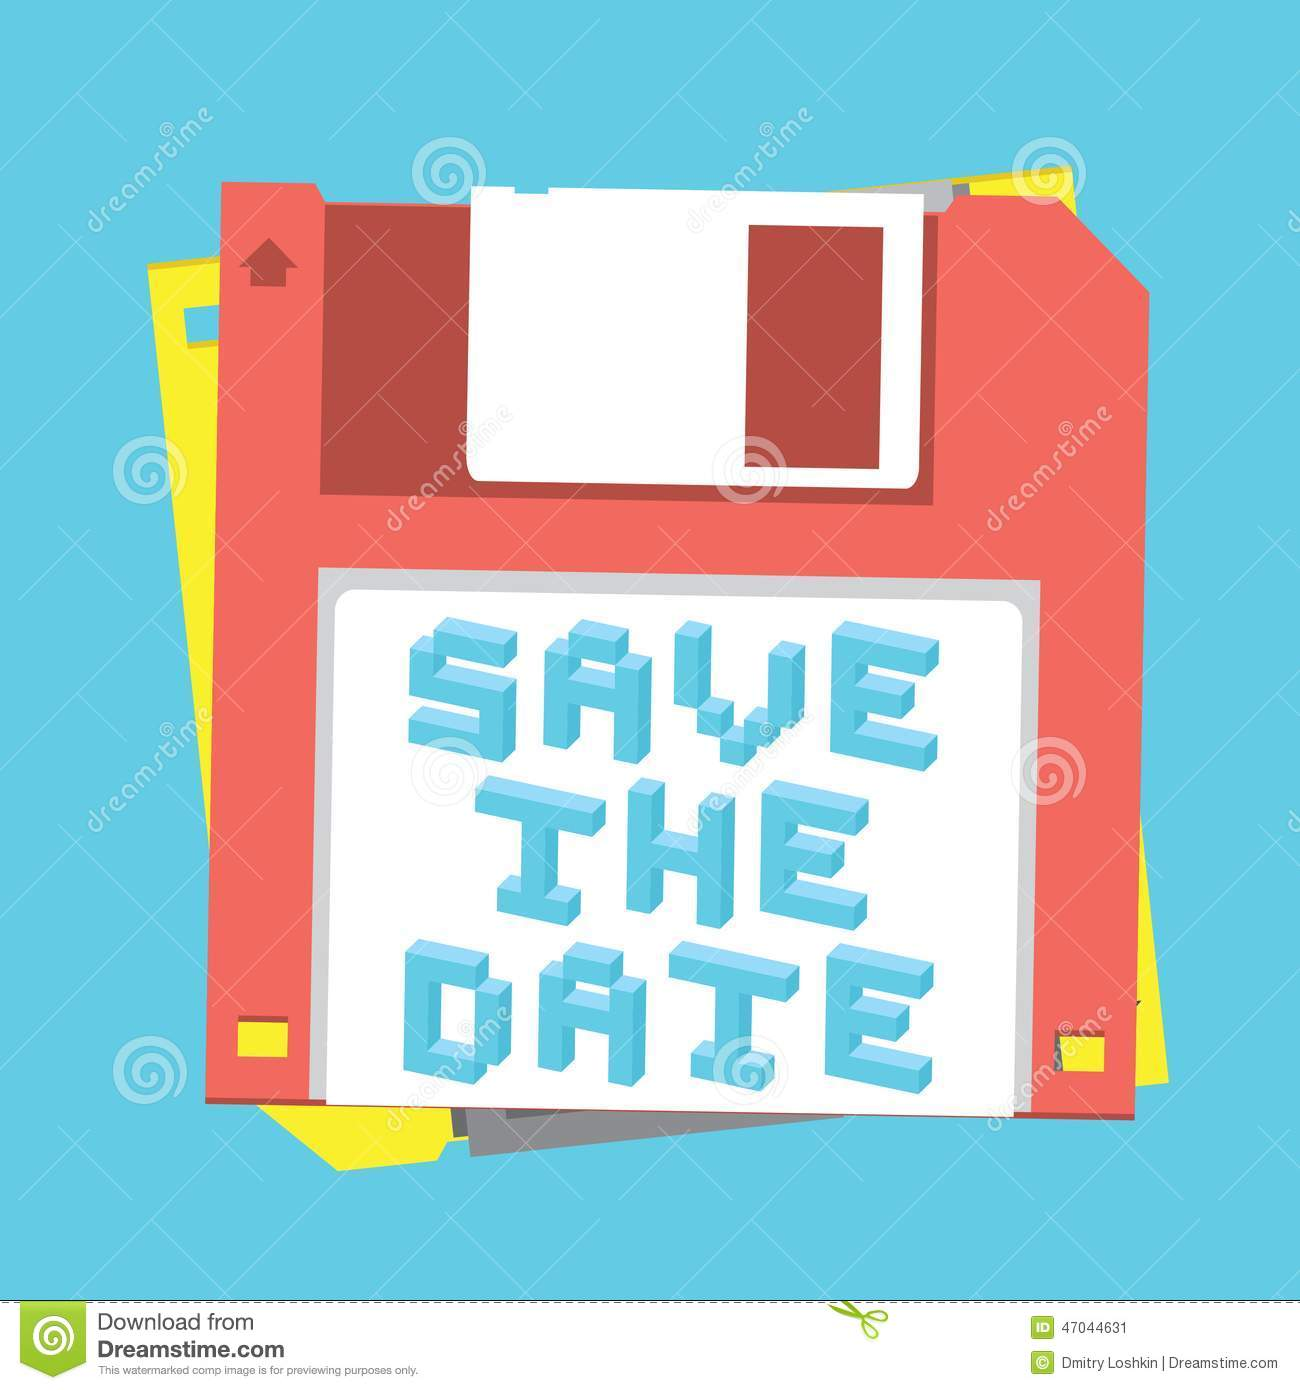 Save The Date Floppy Diskette Stock Vector - Illustration of design ...